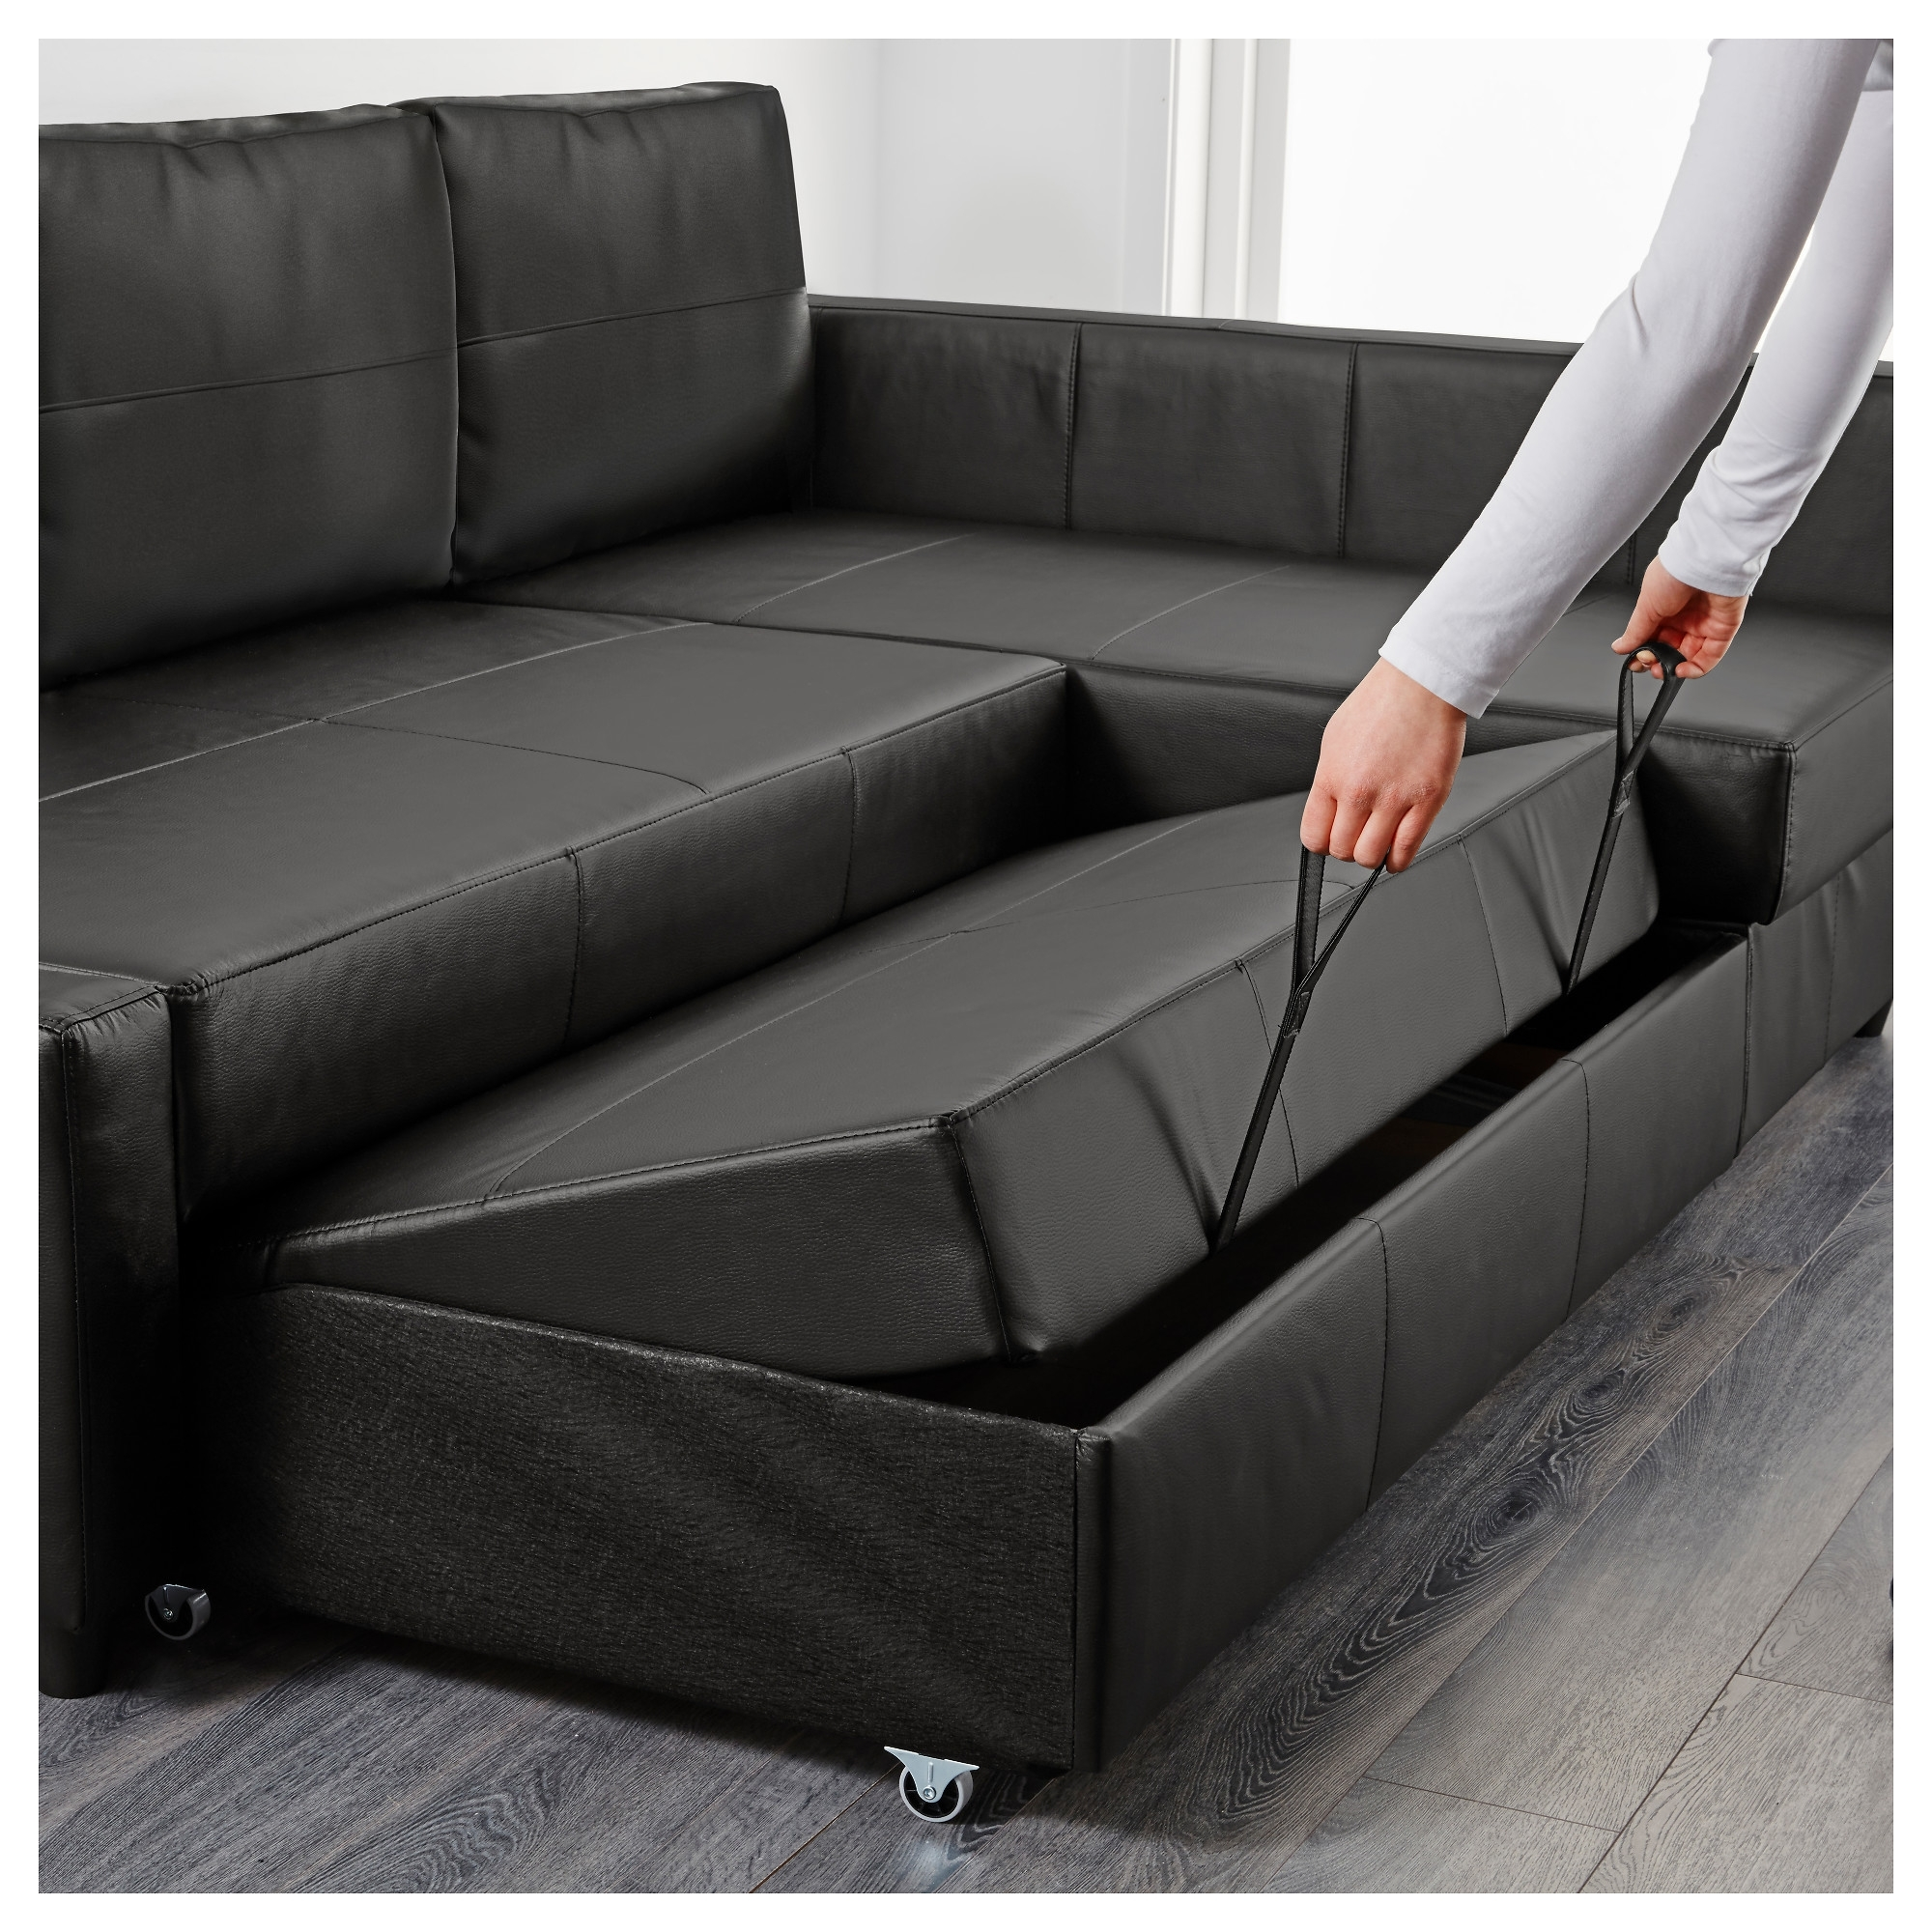 Most Current Friheten Sleeper Sectional,3 Seat W/storage – Skiftebo Dark Gray In Leather Sofas With Storage (View 12 of 20)